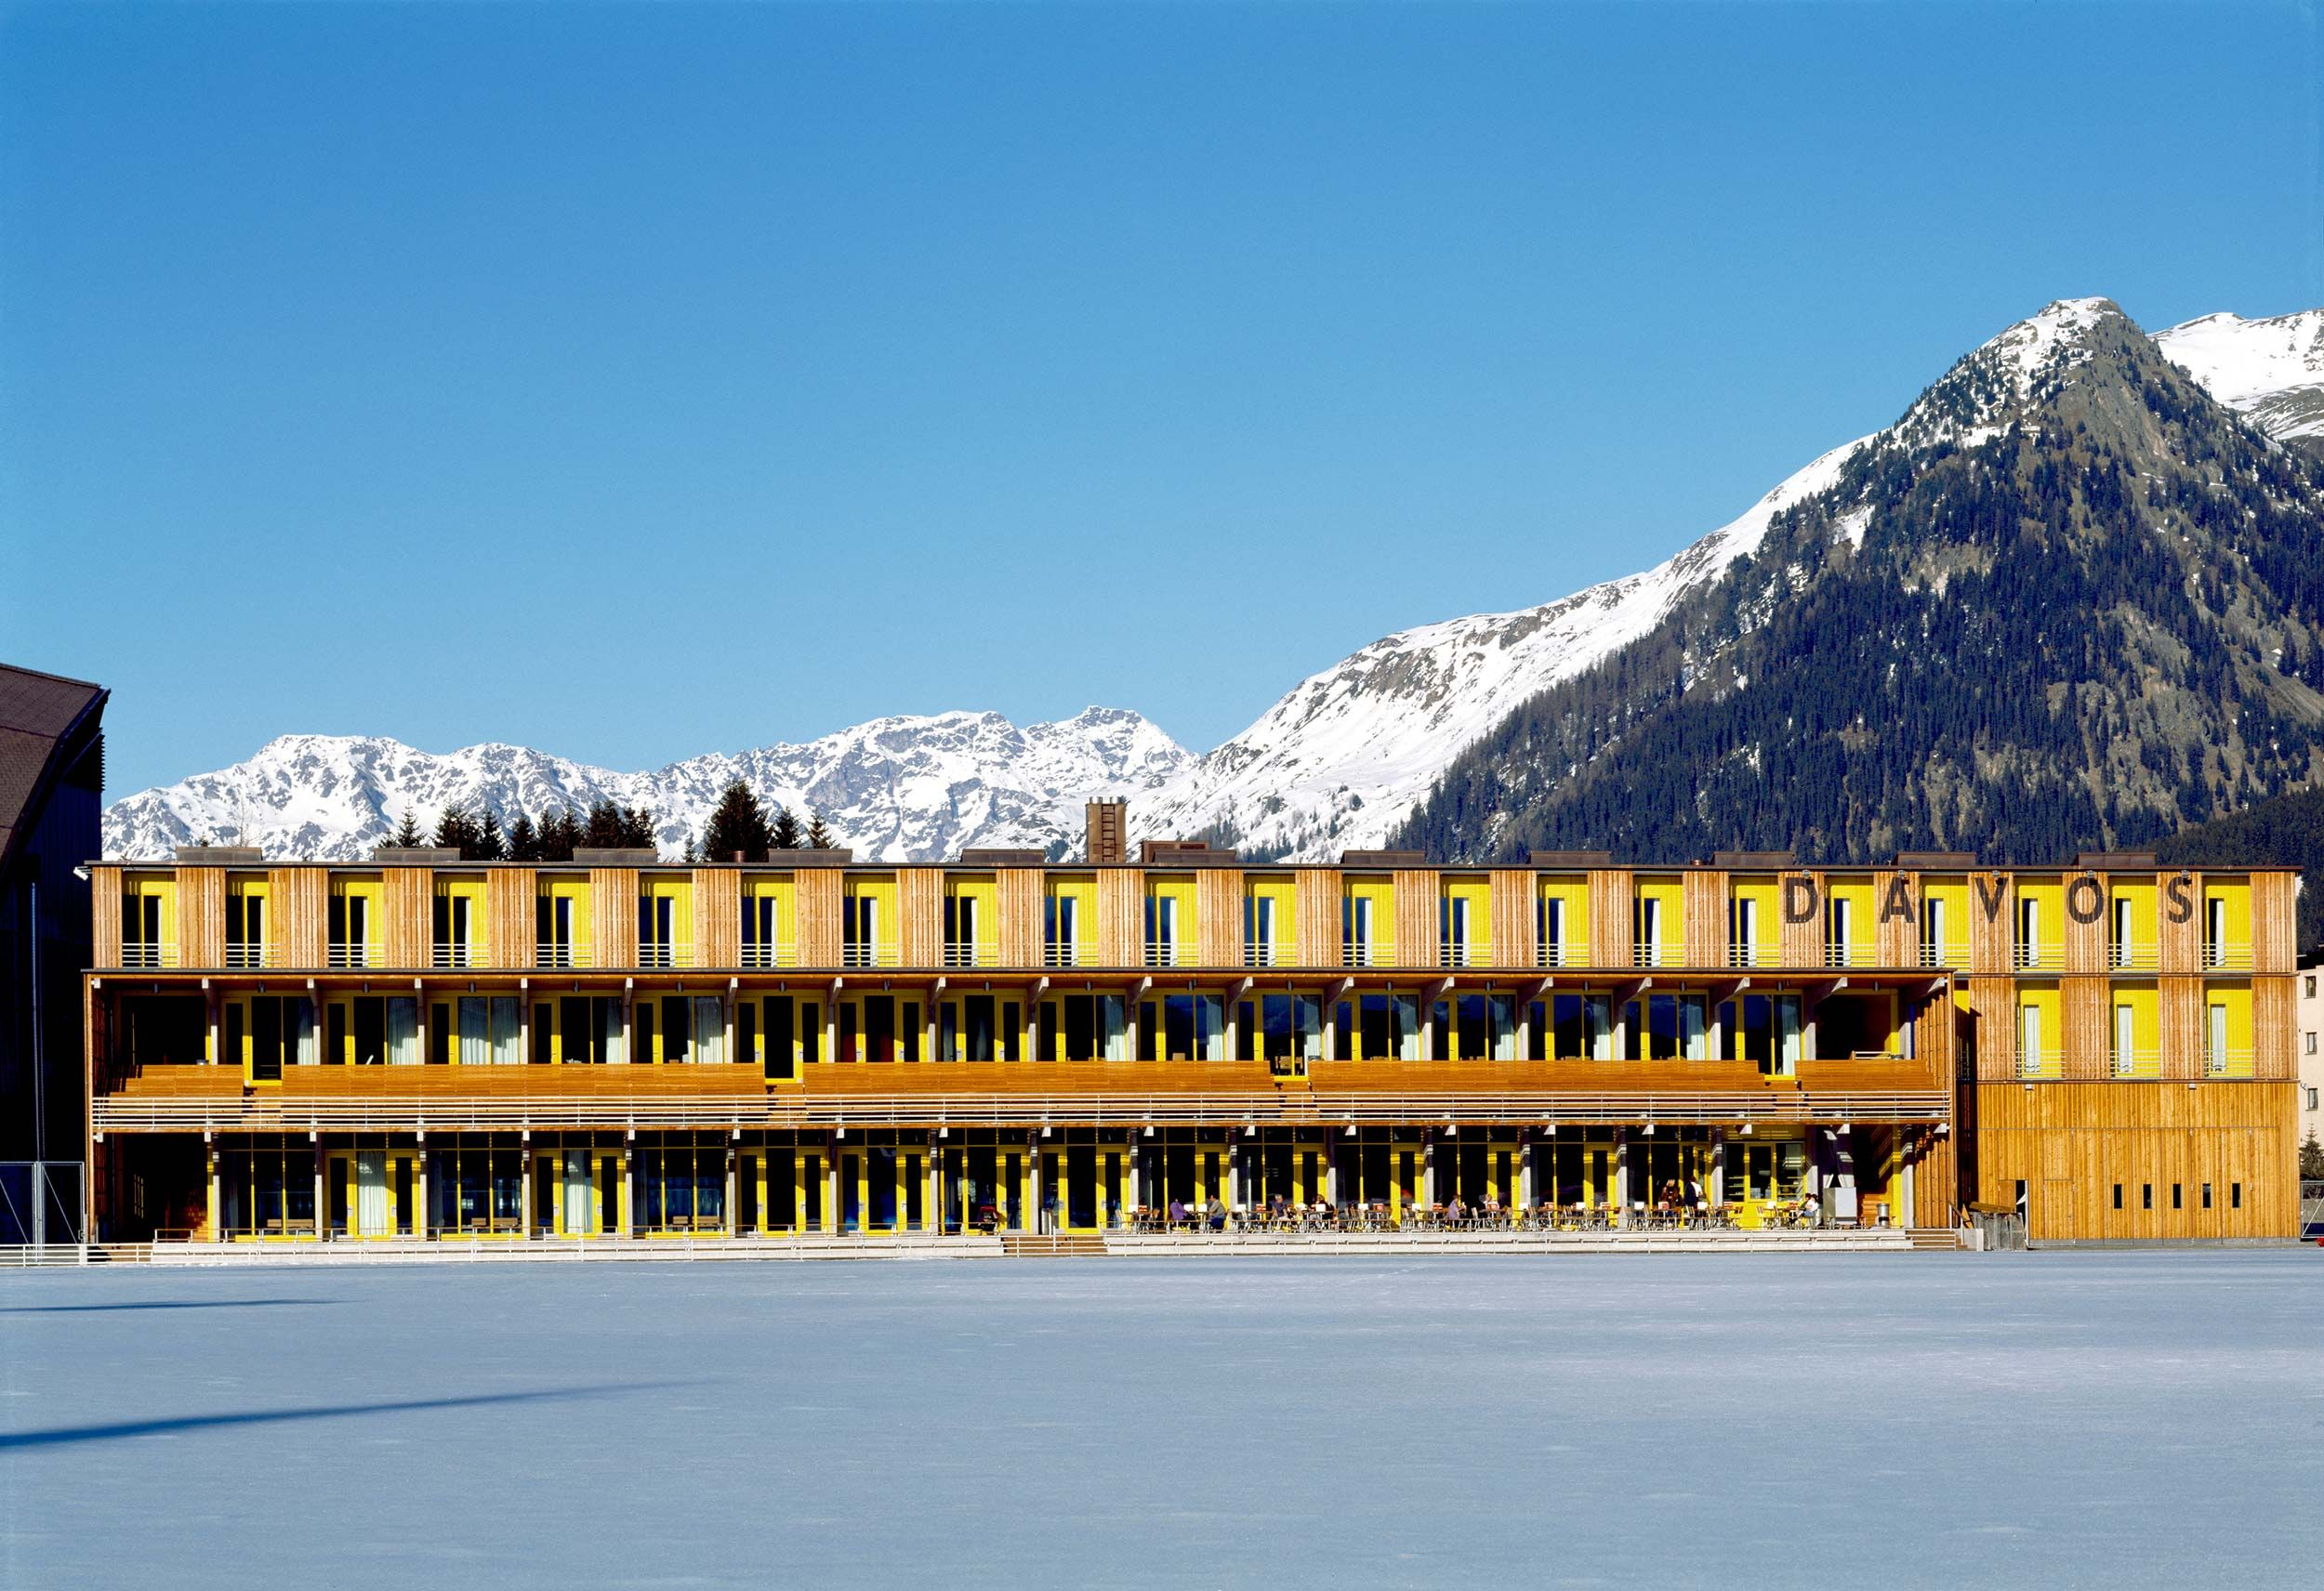 Davos Sports CenterConverted into: Davos Tourism and Sports Center